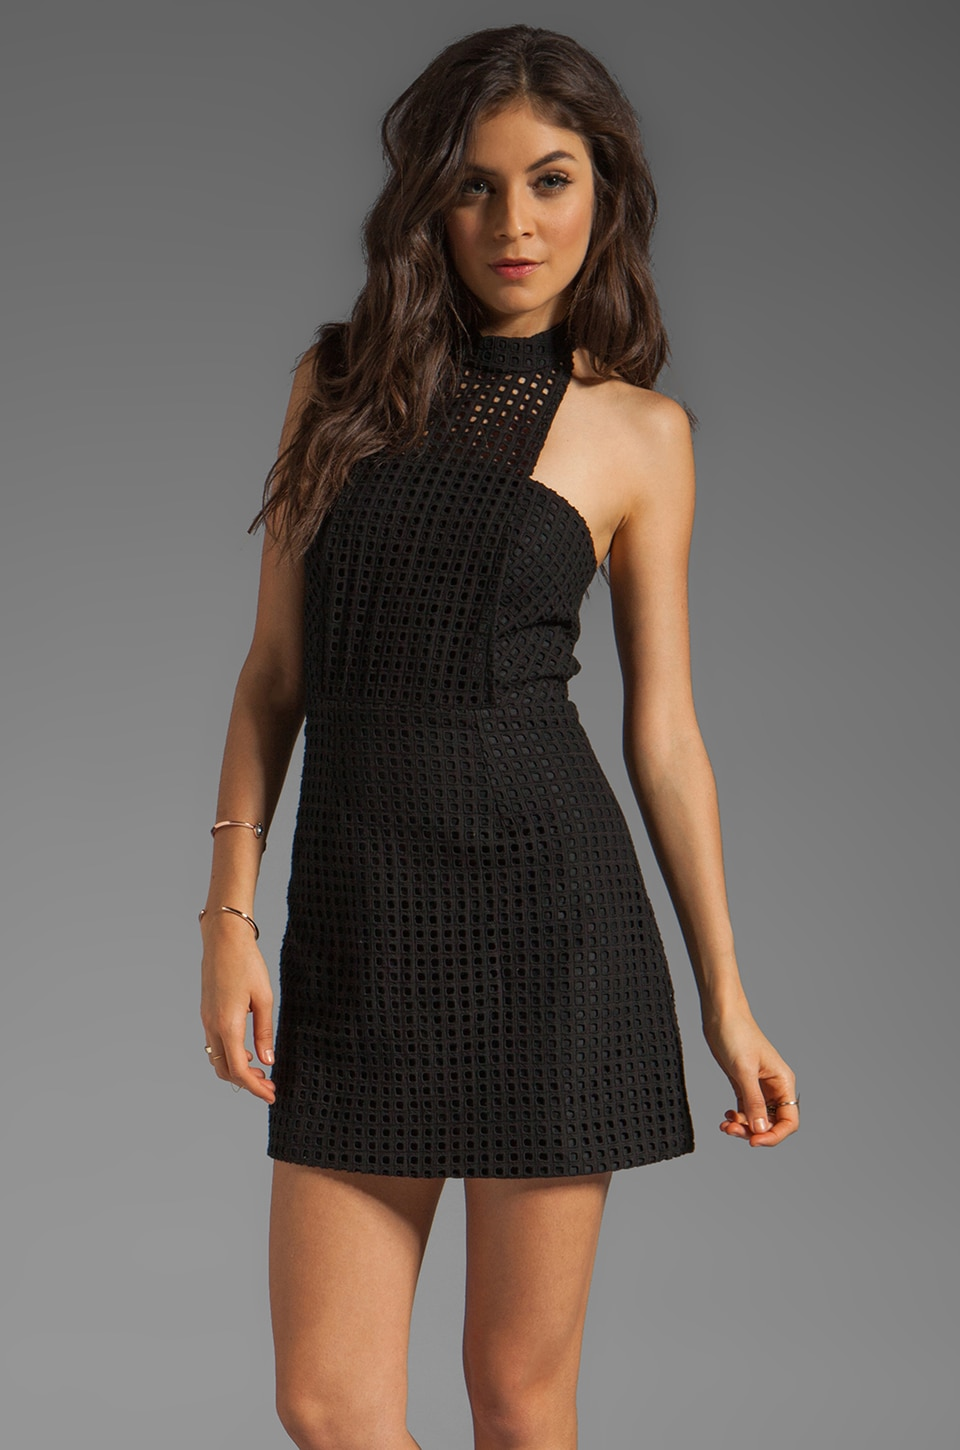 Funktional Chamber Halter Dress in Black